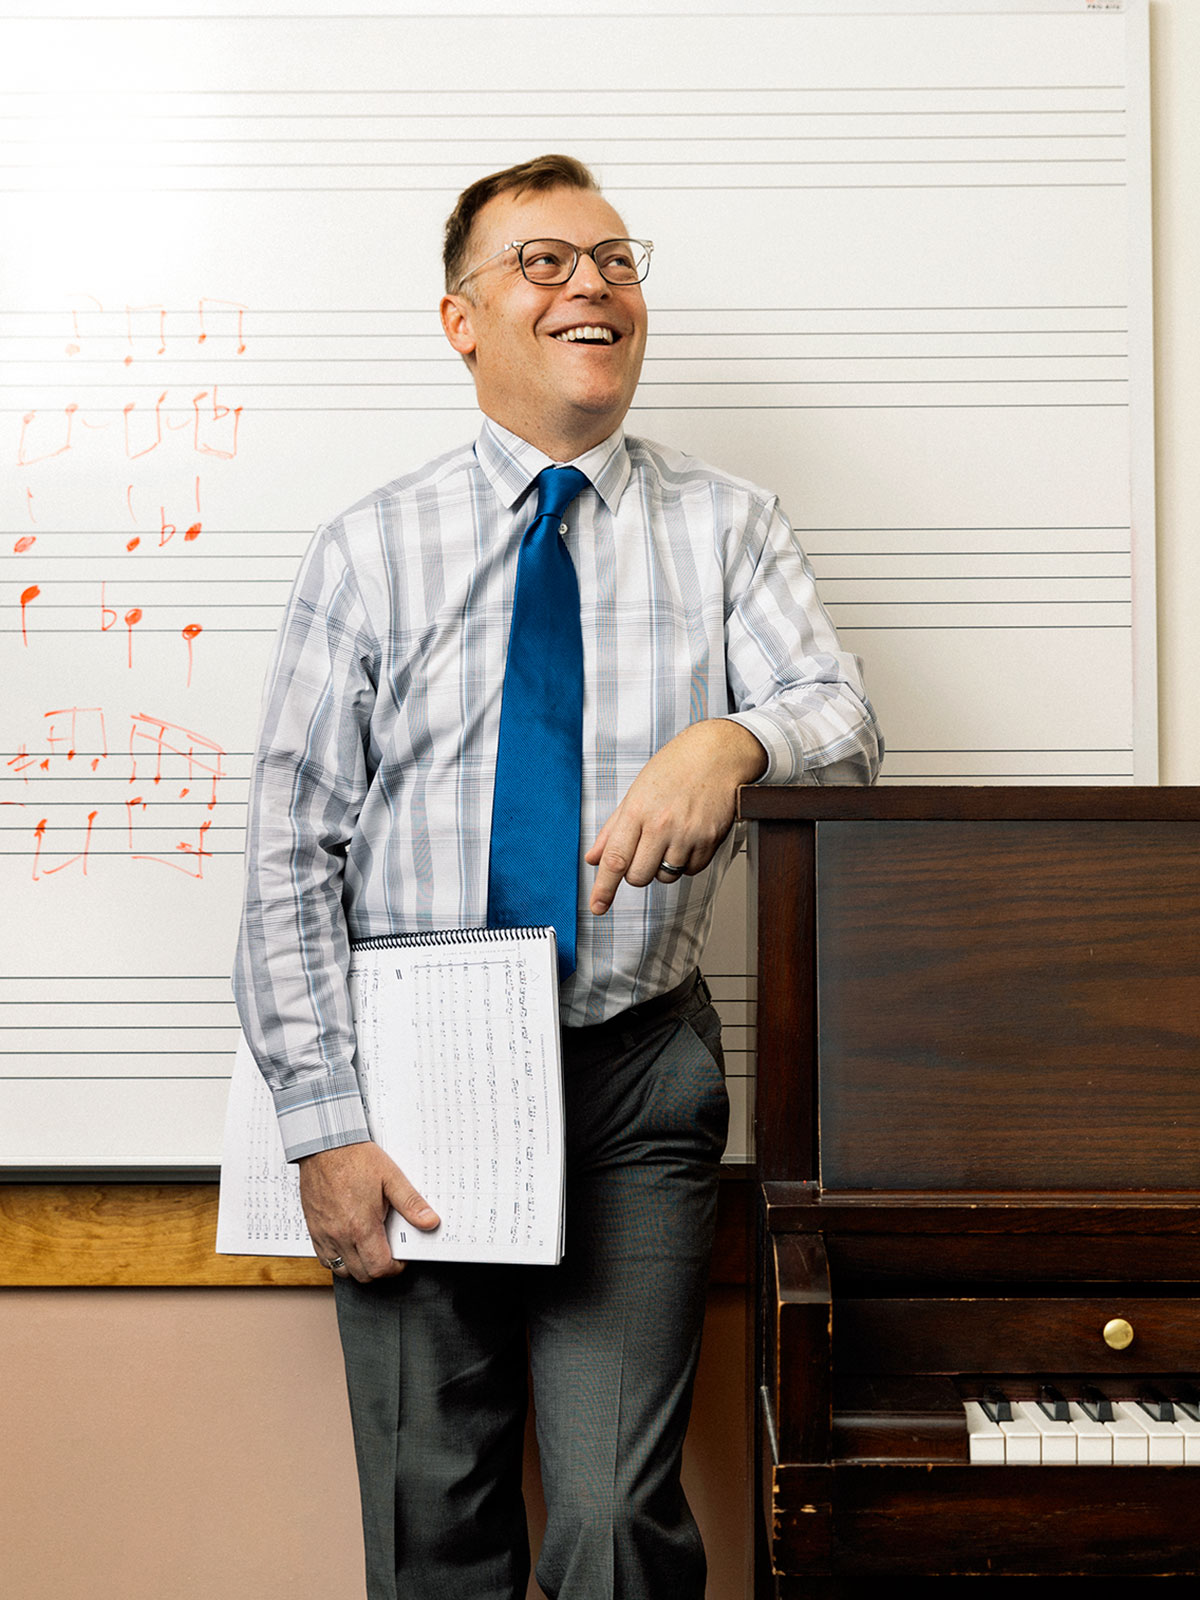 A music professor stands in front of the piano with music written on the a board behind him